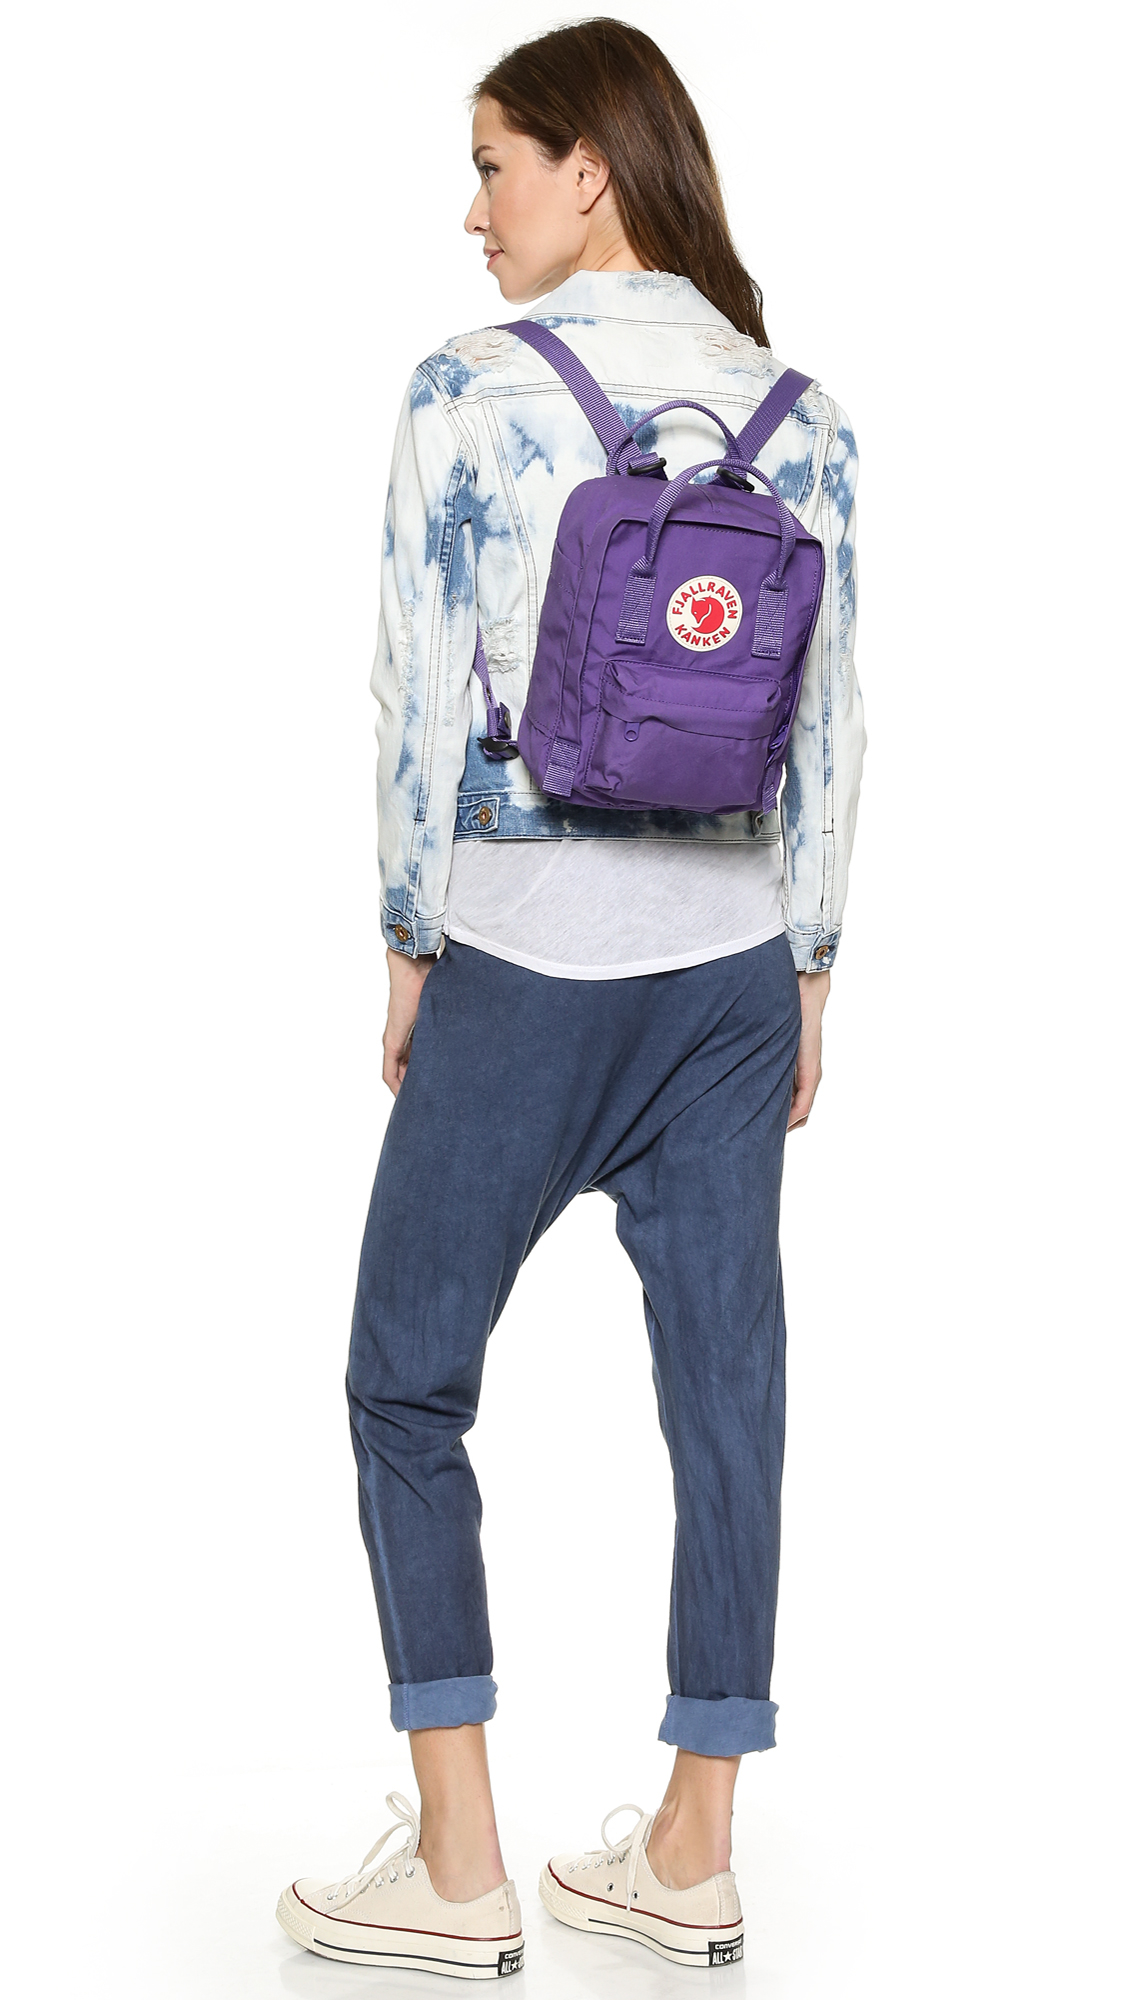 0aa5889eb4 Lyst - Fjallraven Kanken Mini Backpack - Purple in Purple